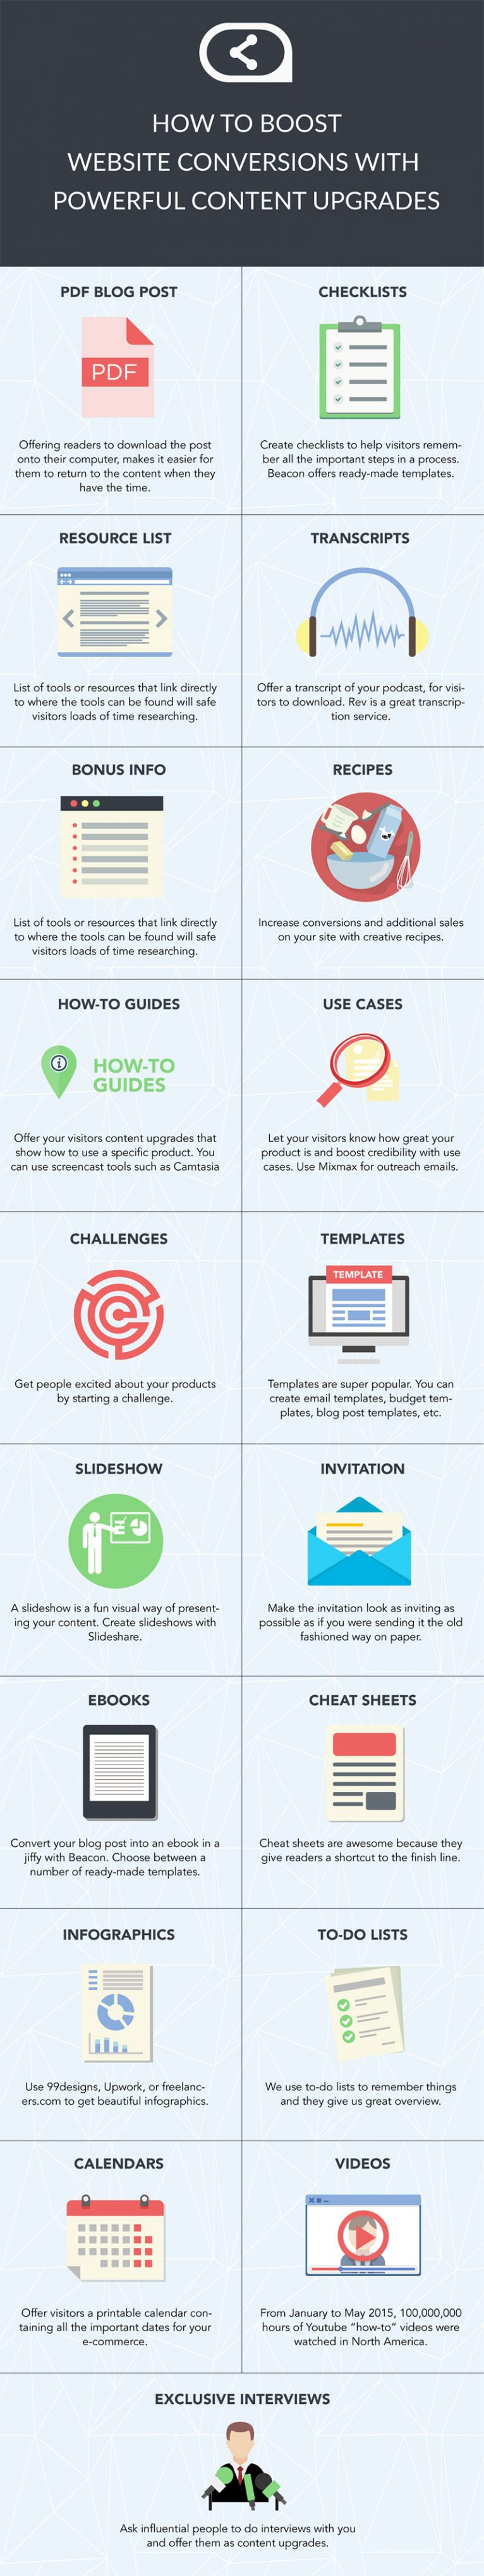 Infographic Content Upgrades Ideas - Sleeknote)